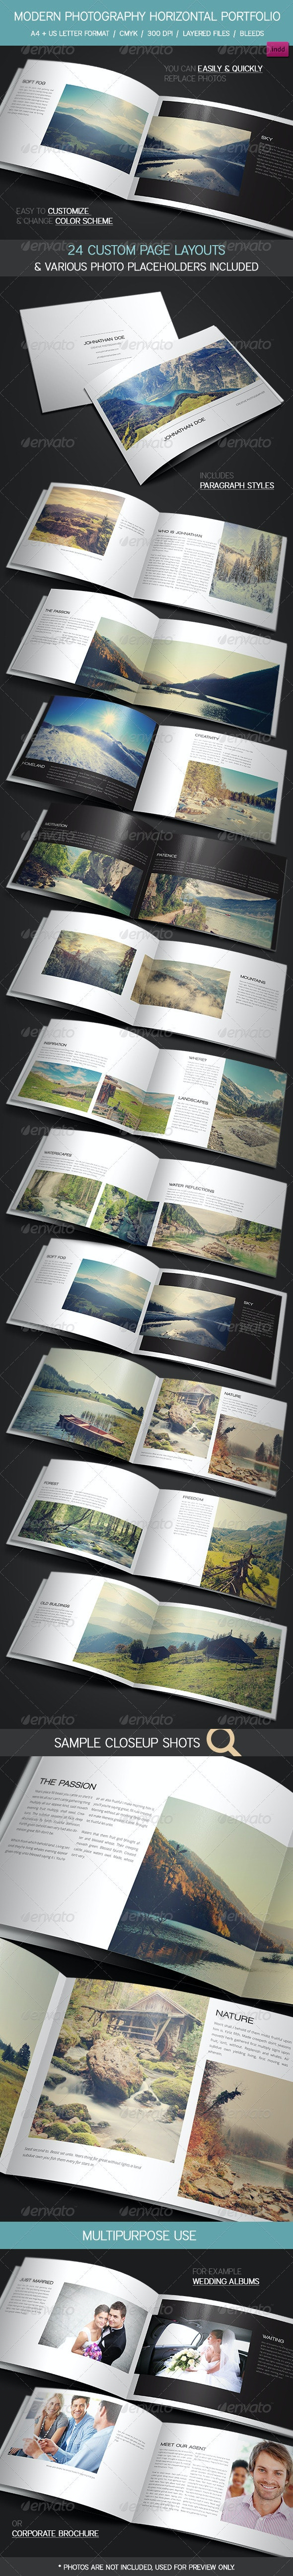 Modern Photography Portfolio, Wedding Album - Portfolio Brochures